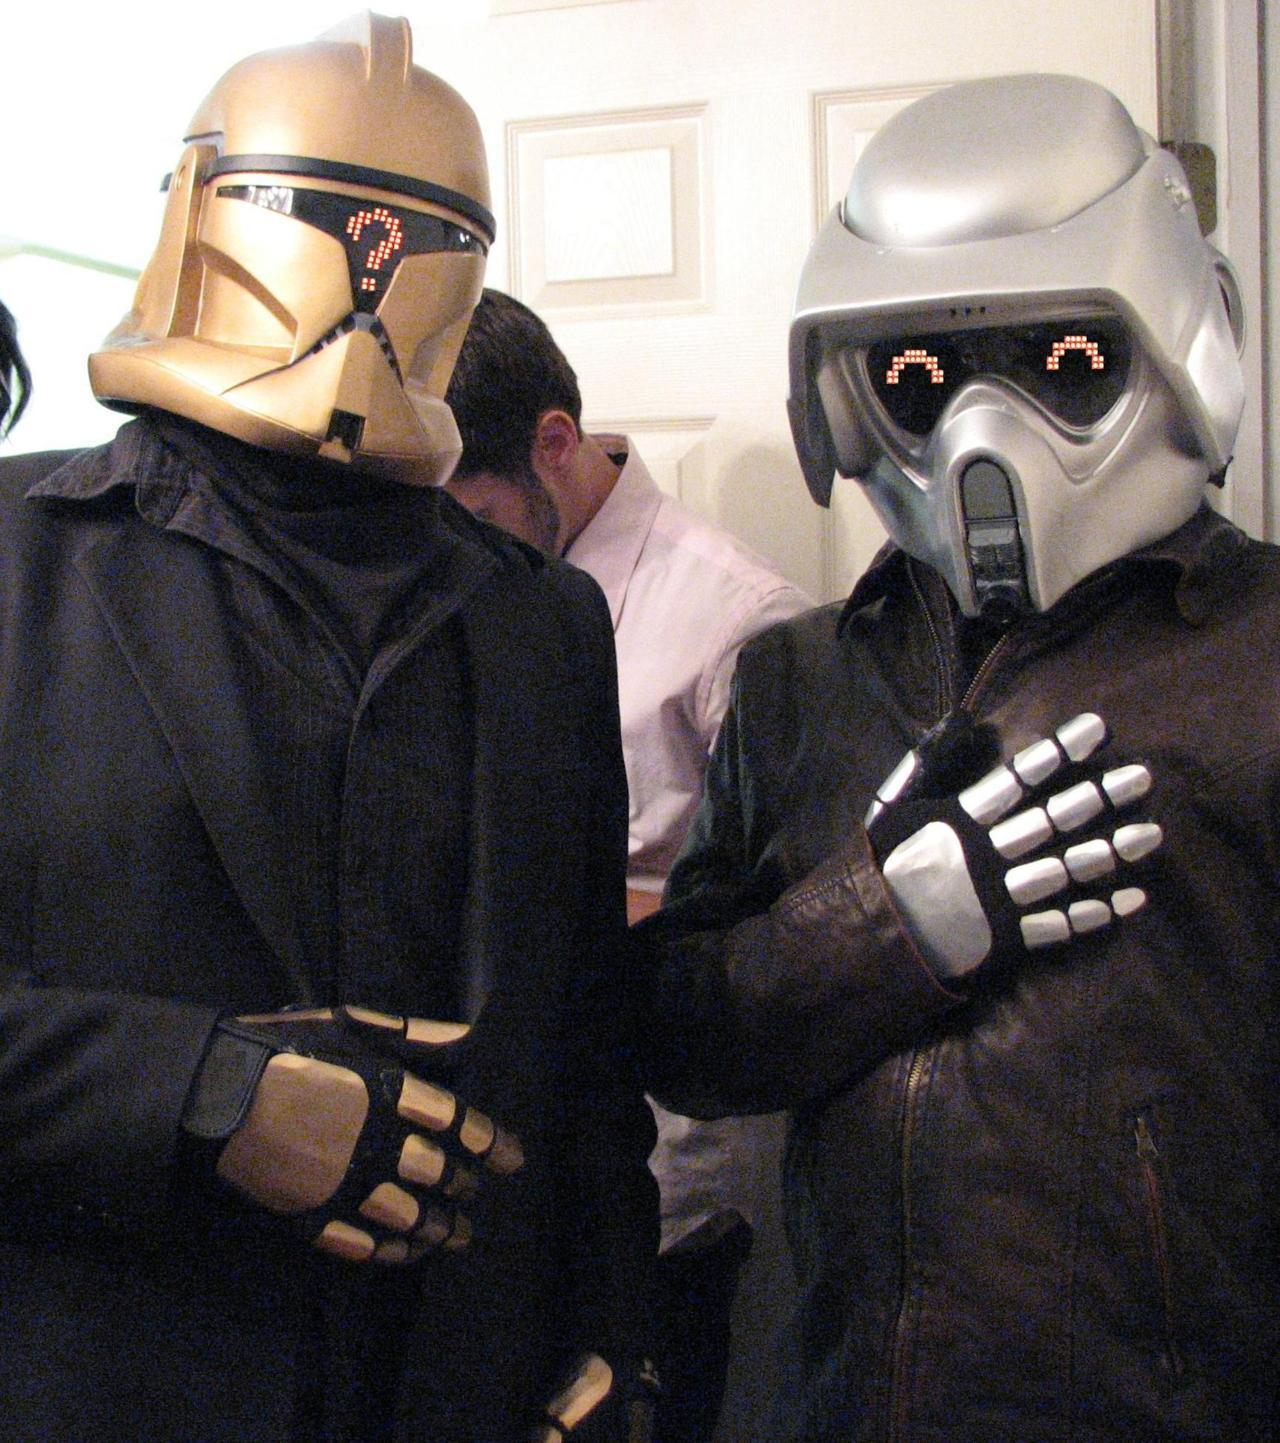 midtowncomics:  Star Wars/Daft Punk mash up cosplayers!